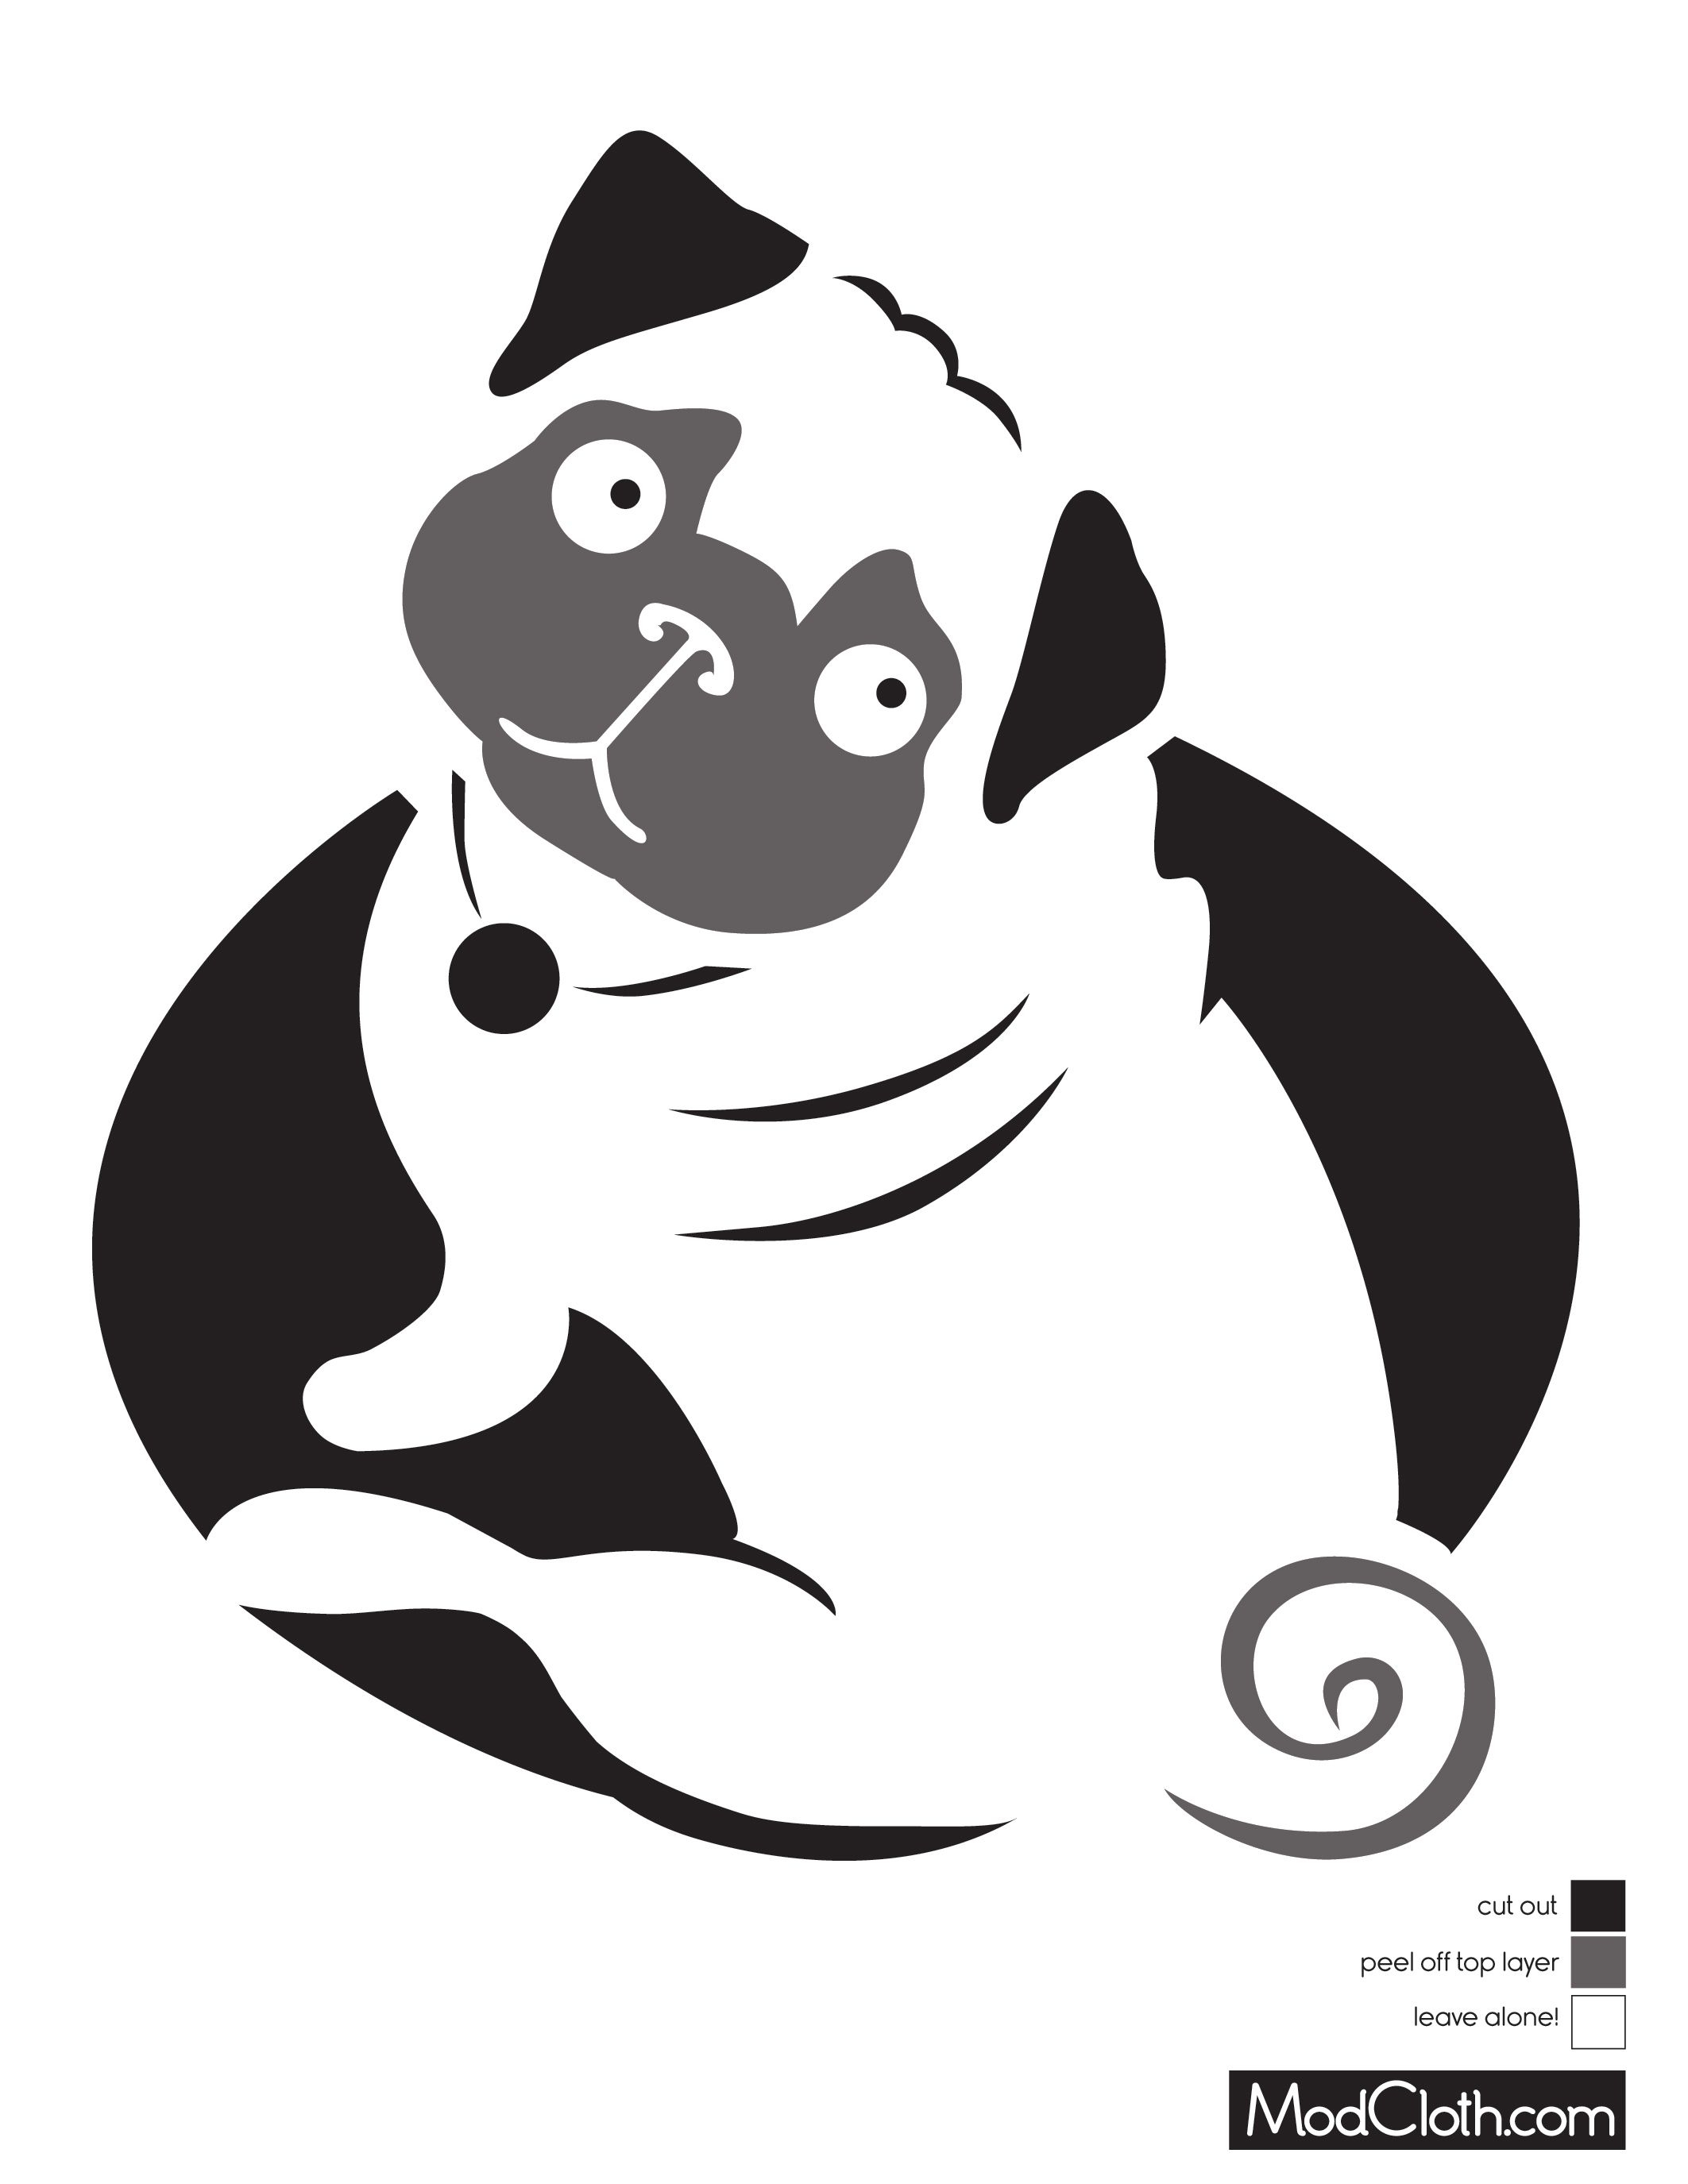 Pug Dog Silhouette Free Halloween Pumpkin Carving Stencil Design - Free Printable Pumpkin Carving Templates Dog